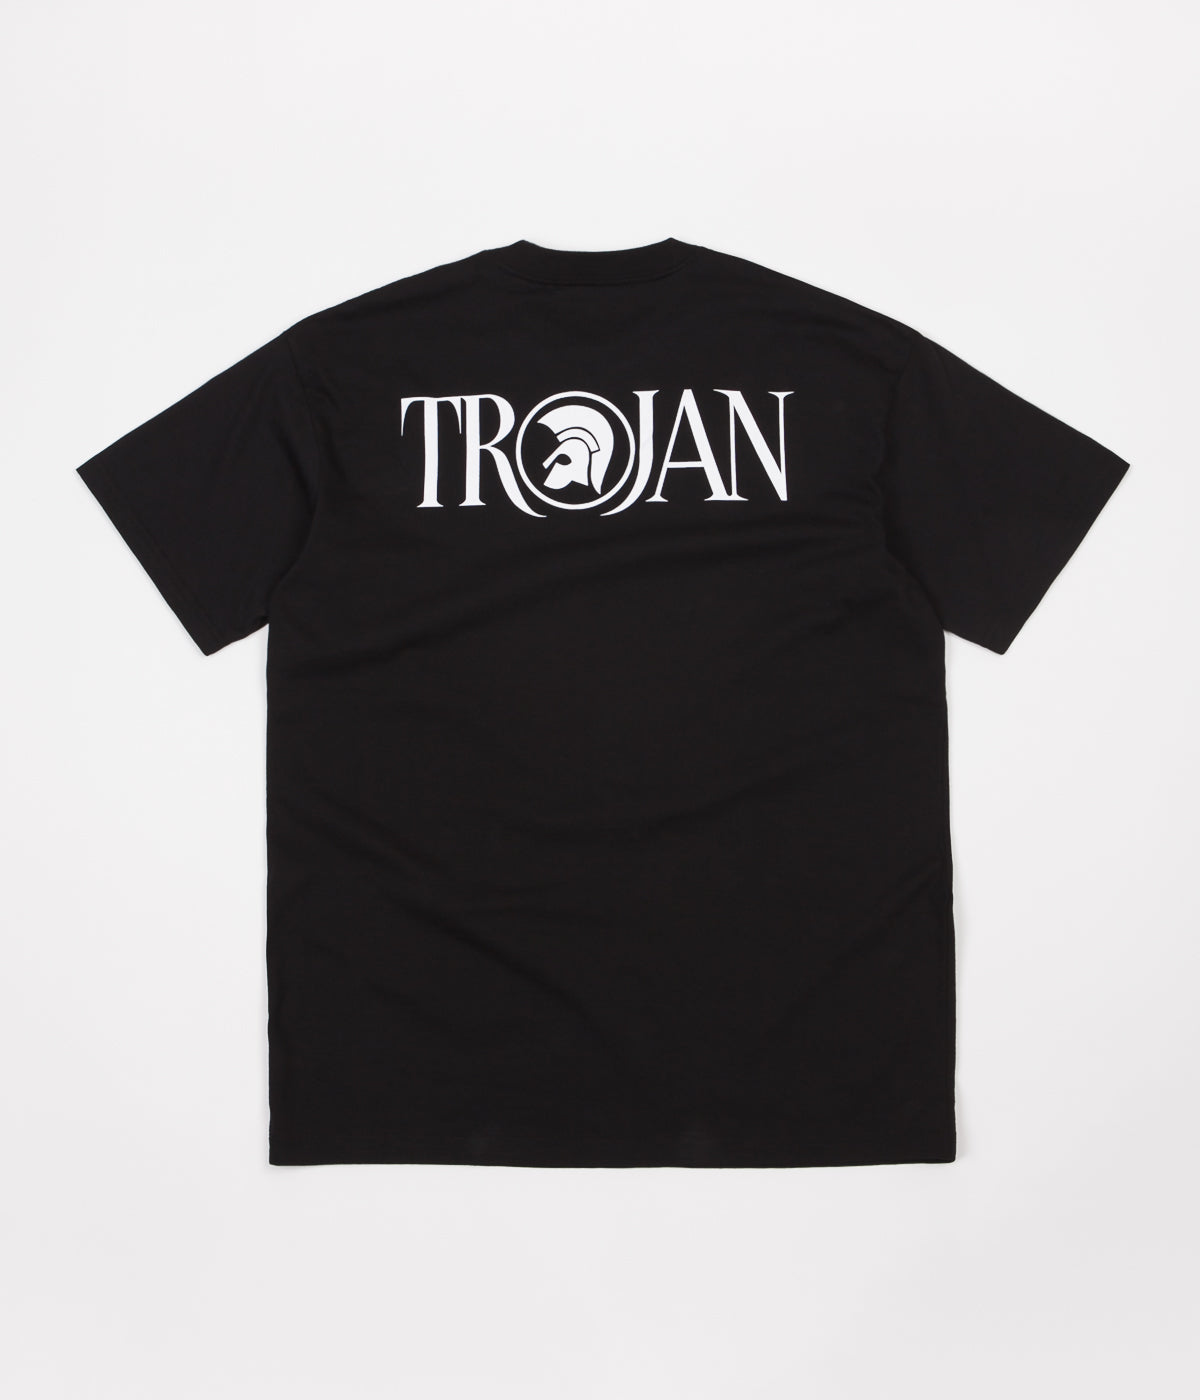 Carhartt x Trojan Records Moonstomp T-Shirt - Trojan Black